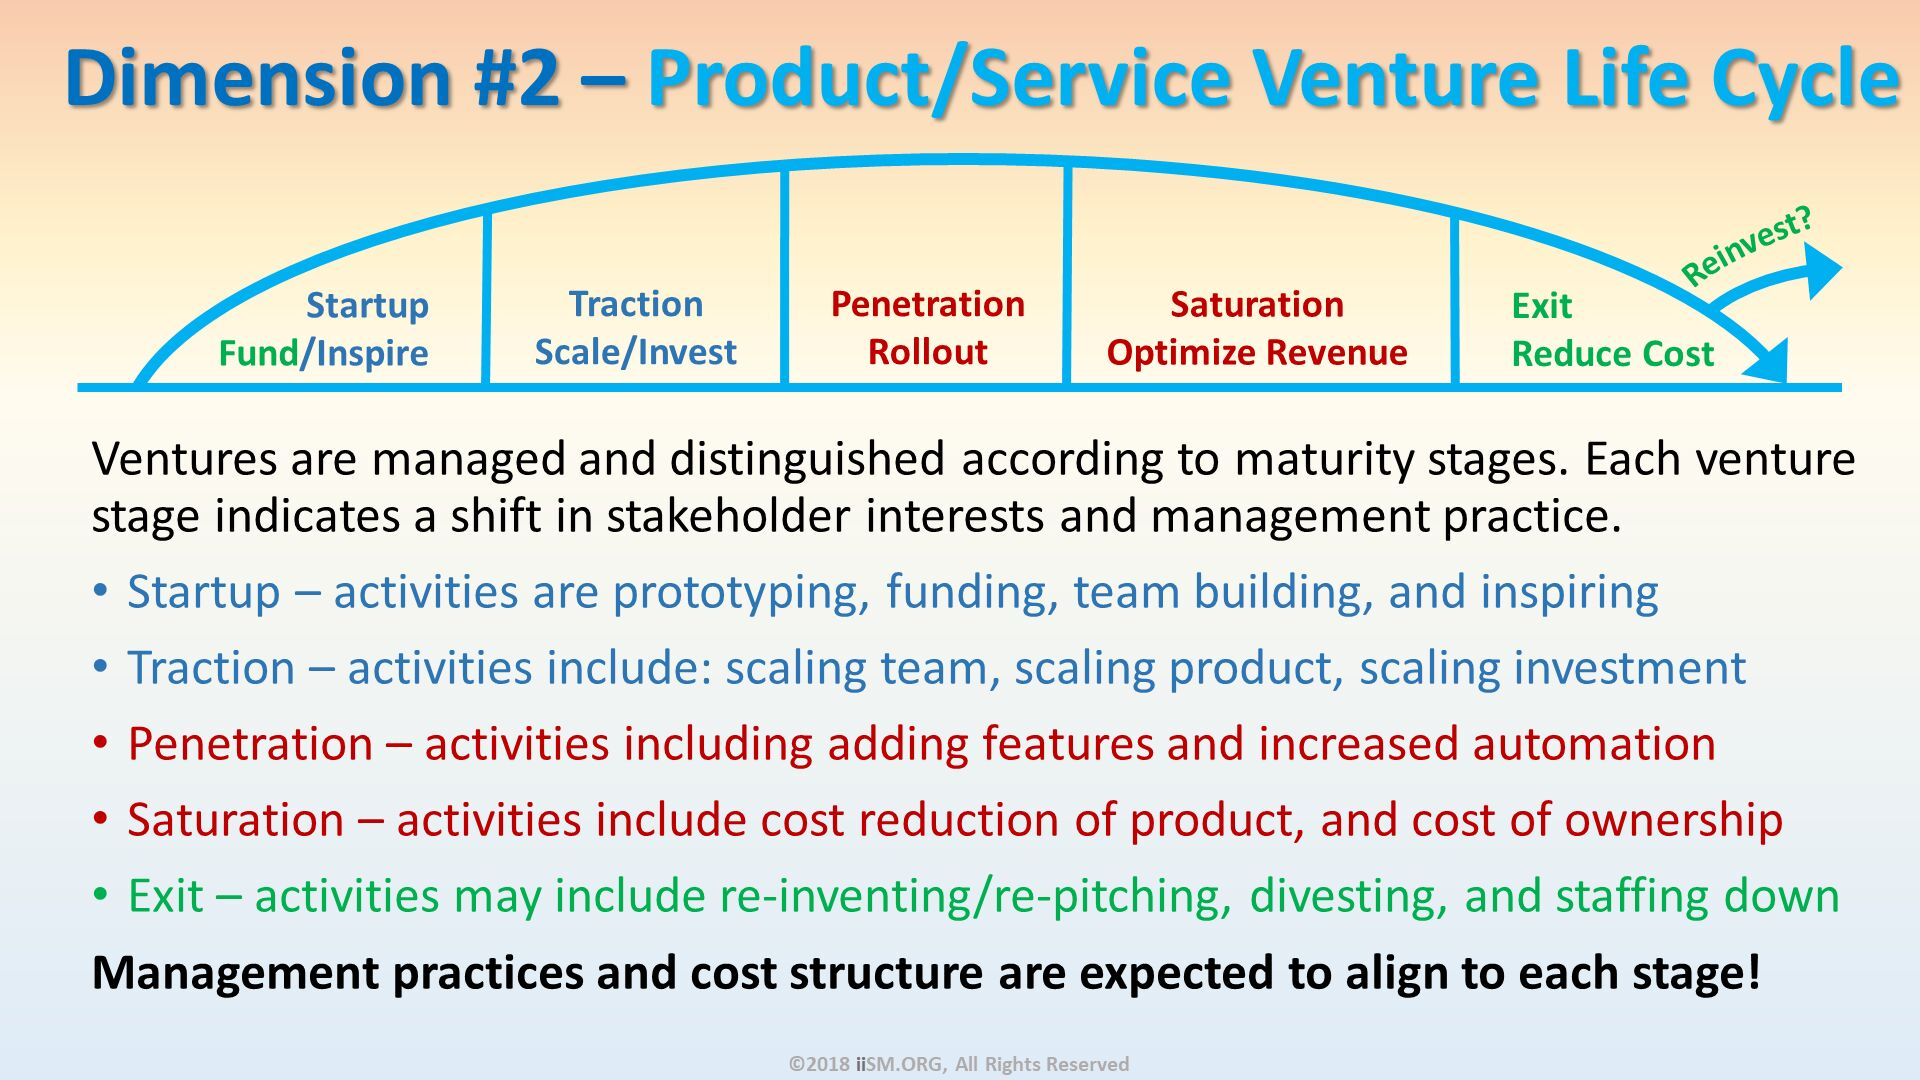 Dimension #2 – Product/Service Venture Life Cycle . Ventures are managed and distinguished according to maturity stages. Each venture stage indicates a shift in stakeholder interests and management practice. Startup – activities are prototyping, funding, team building, and inspiring Traction – activities include: scaling team, scaling product, scaling investment Penetration – activities including adding features and increased automation Saturation – activities include cost reduction of product, and cost of ownership Exit – activities may include re-inventing/re-pitching, divesting, and staffing down Management practices and cost structure are expected to align to each stage!  . ©2018 iiSM.ORG, All Rights Reserved.